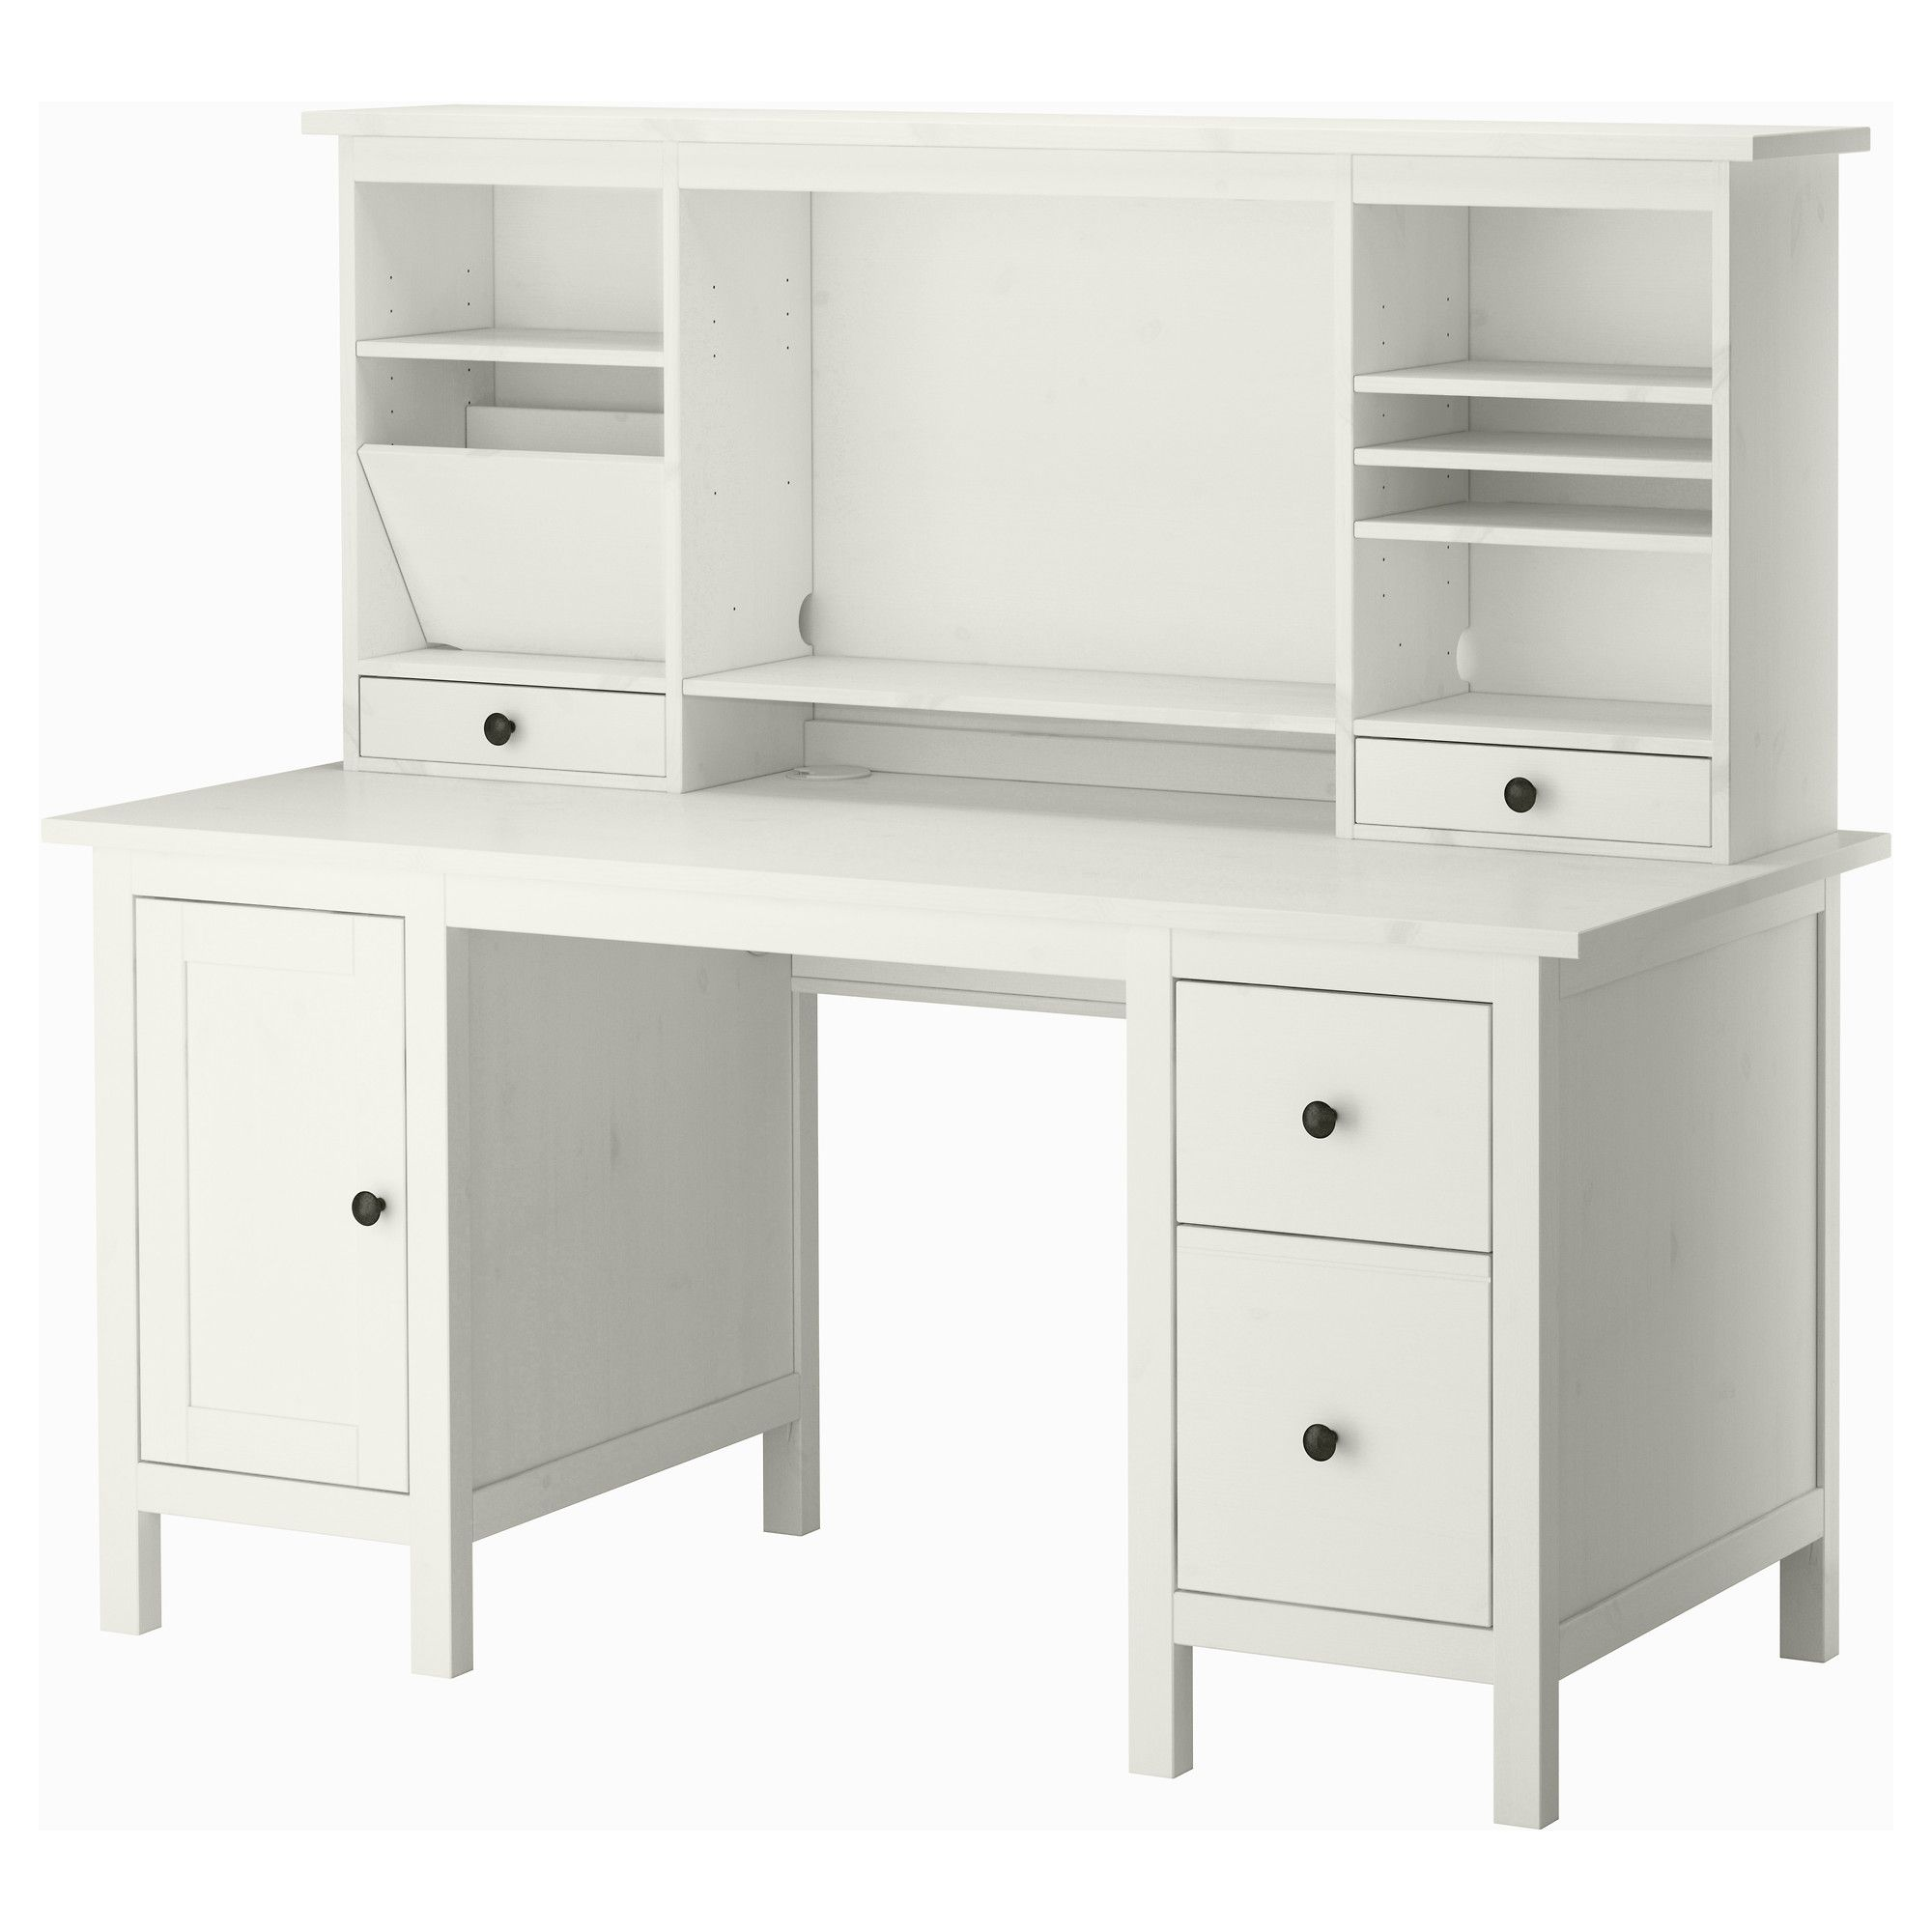 Merveilleux HEMNES Desk With Add On Unit   White Stain   IKEA Blocky, But Still Pretty  And White And Hutchy.